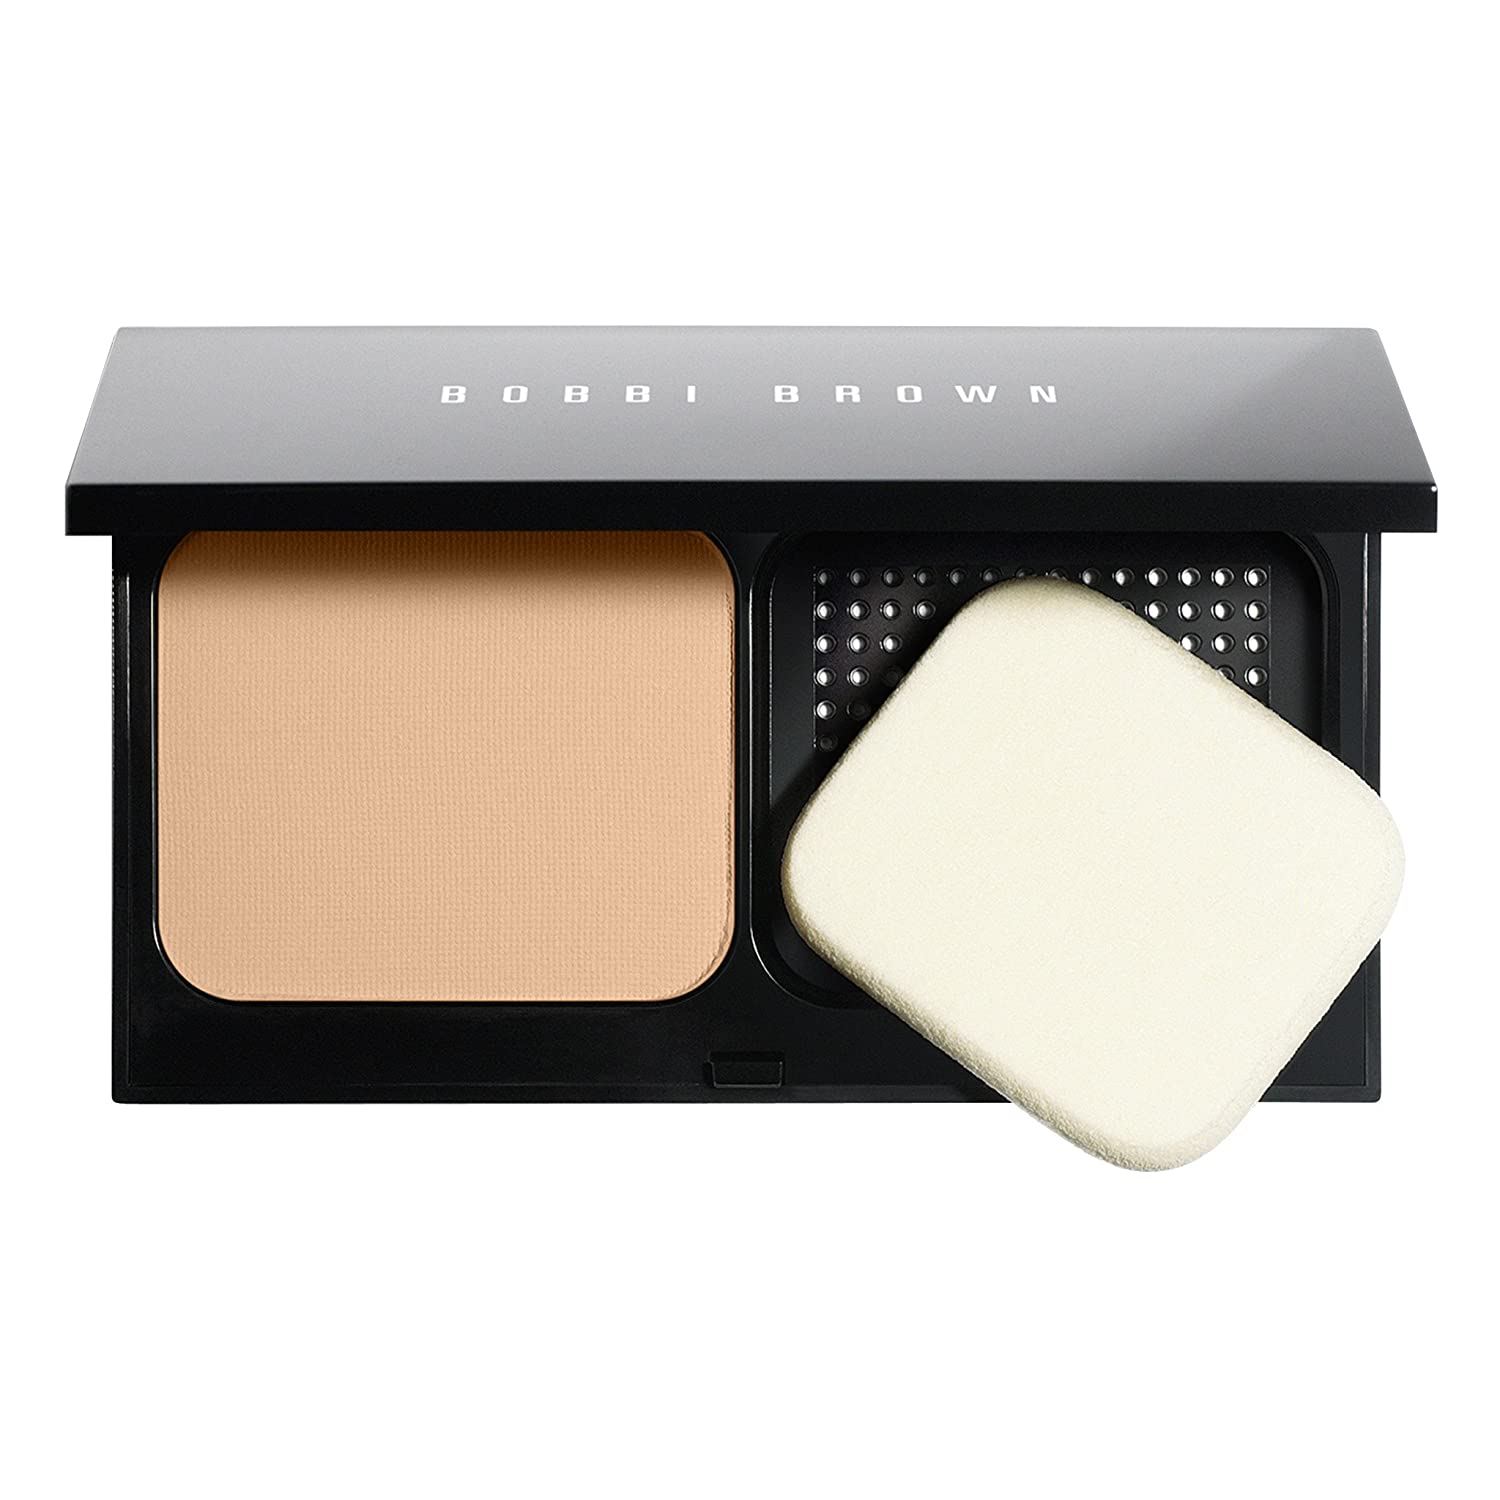 Bobbi Brown Skin Weightless Powder Foundation, No. 03 Beige, 0.38 Ounce